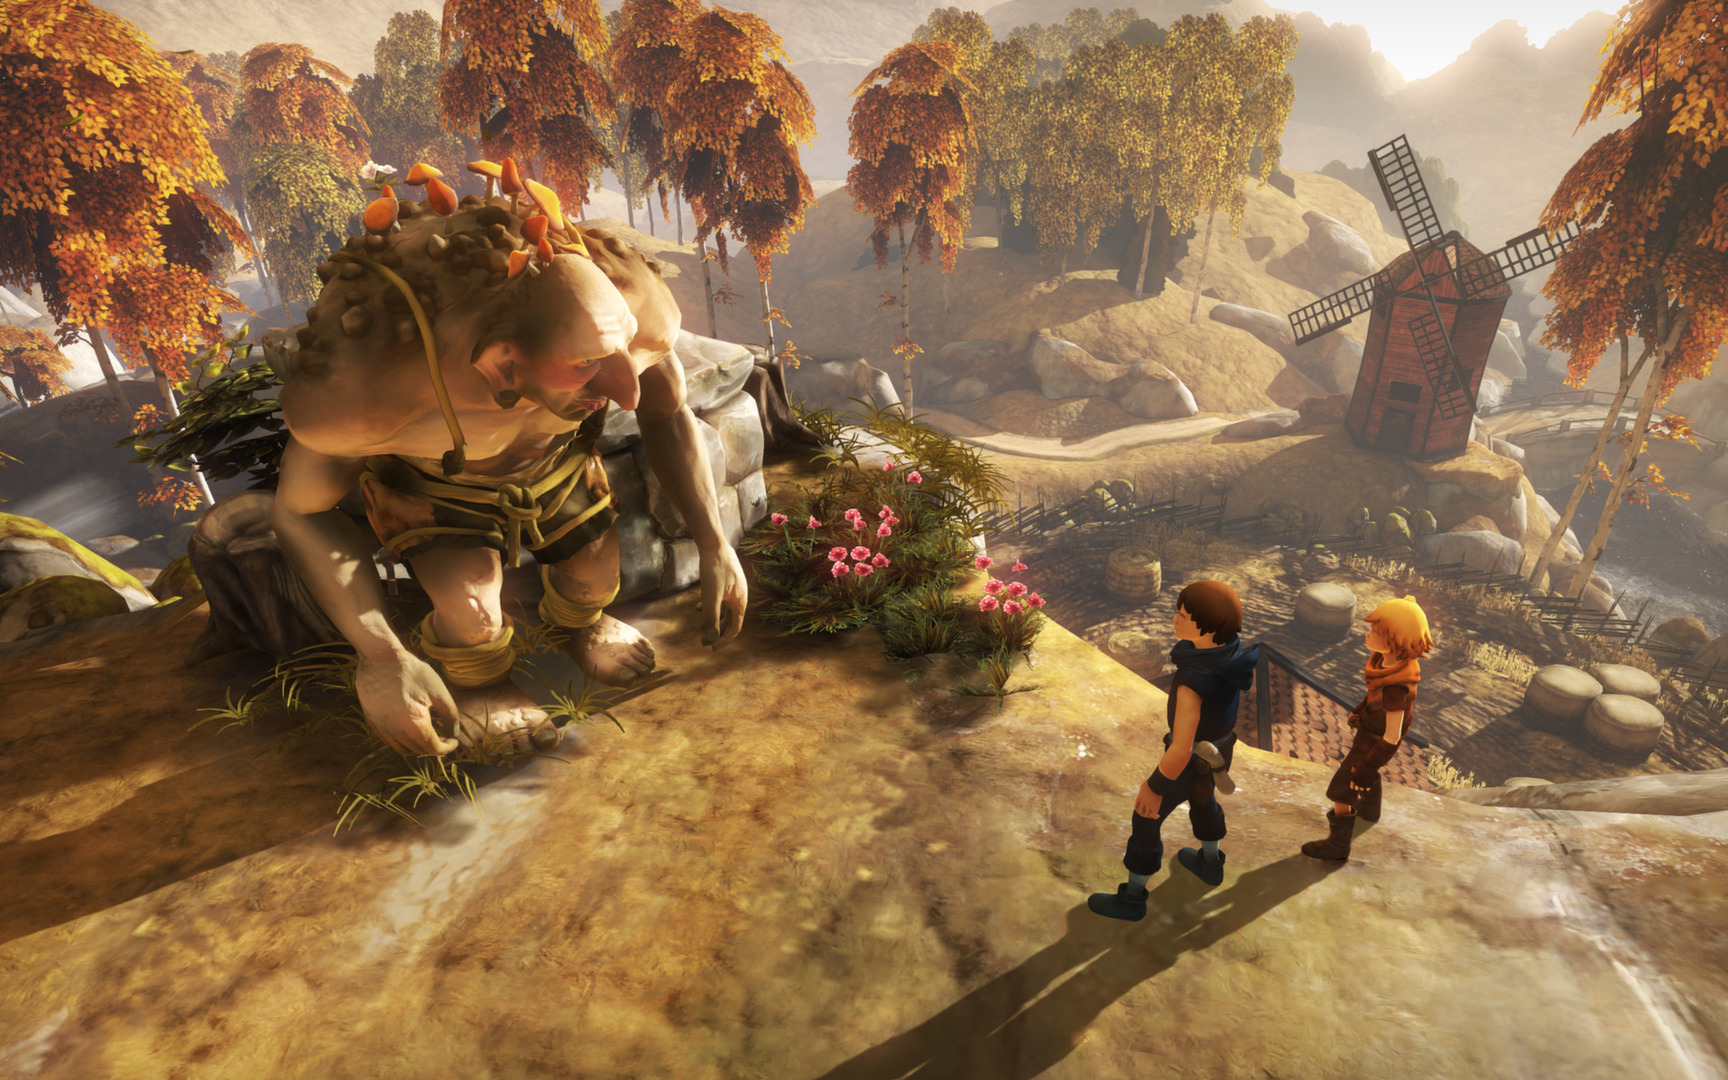 Brothers: A Tale of Two Sons screenshot 1